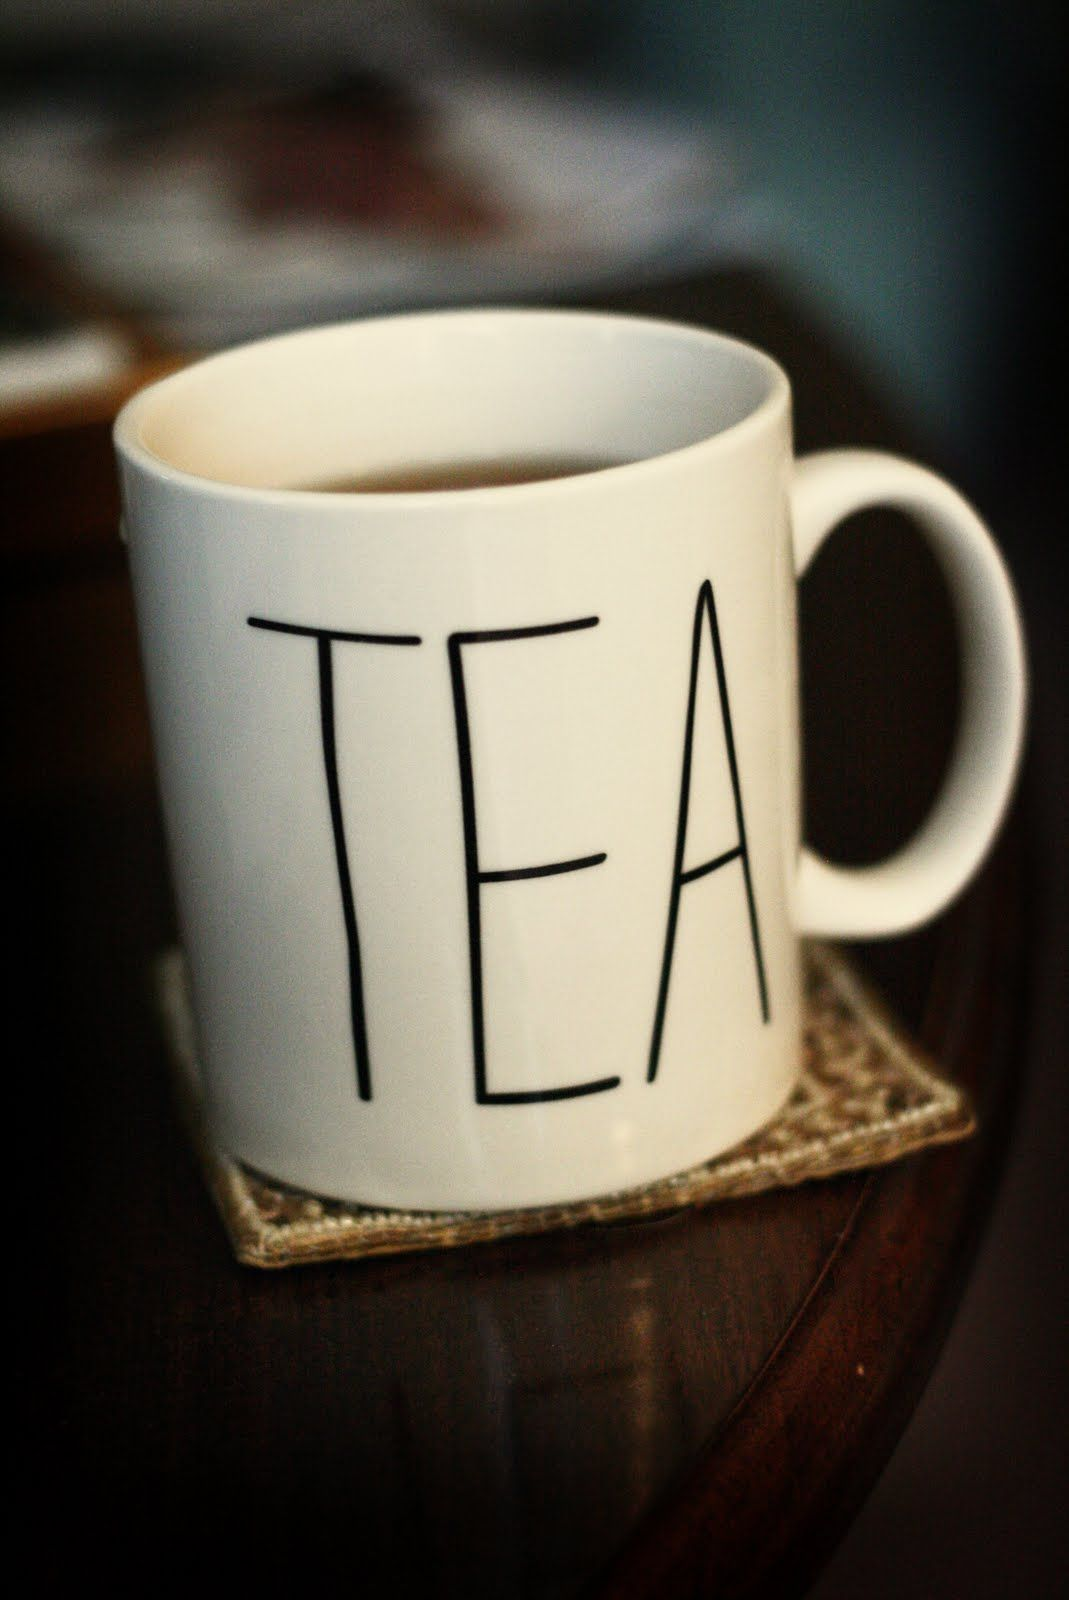 A great DIY to dress up a plain mug! Could also be a great gift for any tea or coffee lovers you know...or those who drink juice out of a mug, like my family. :) Simply write on the mug with a Sharpie, and bake in the oven for around 30 minutes at somewhere between 300 and 400 degrees.